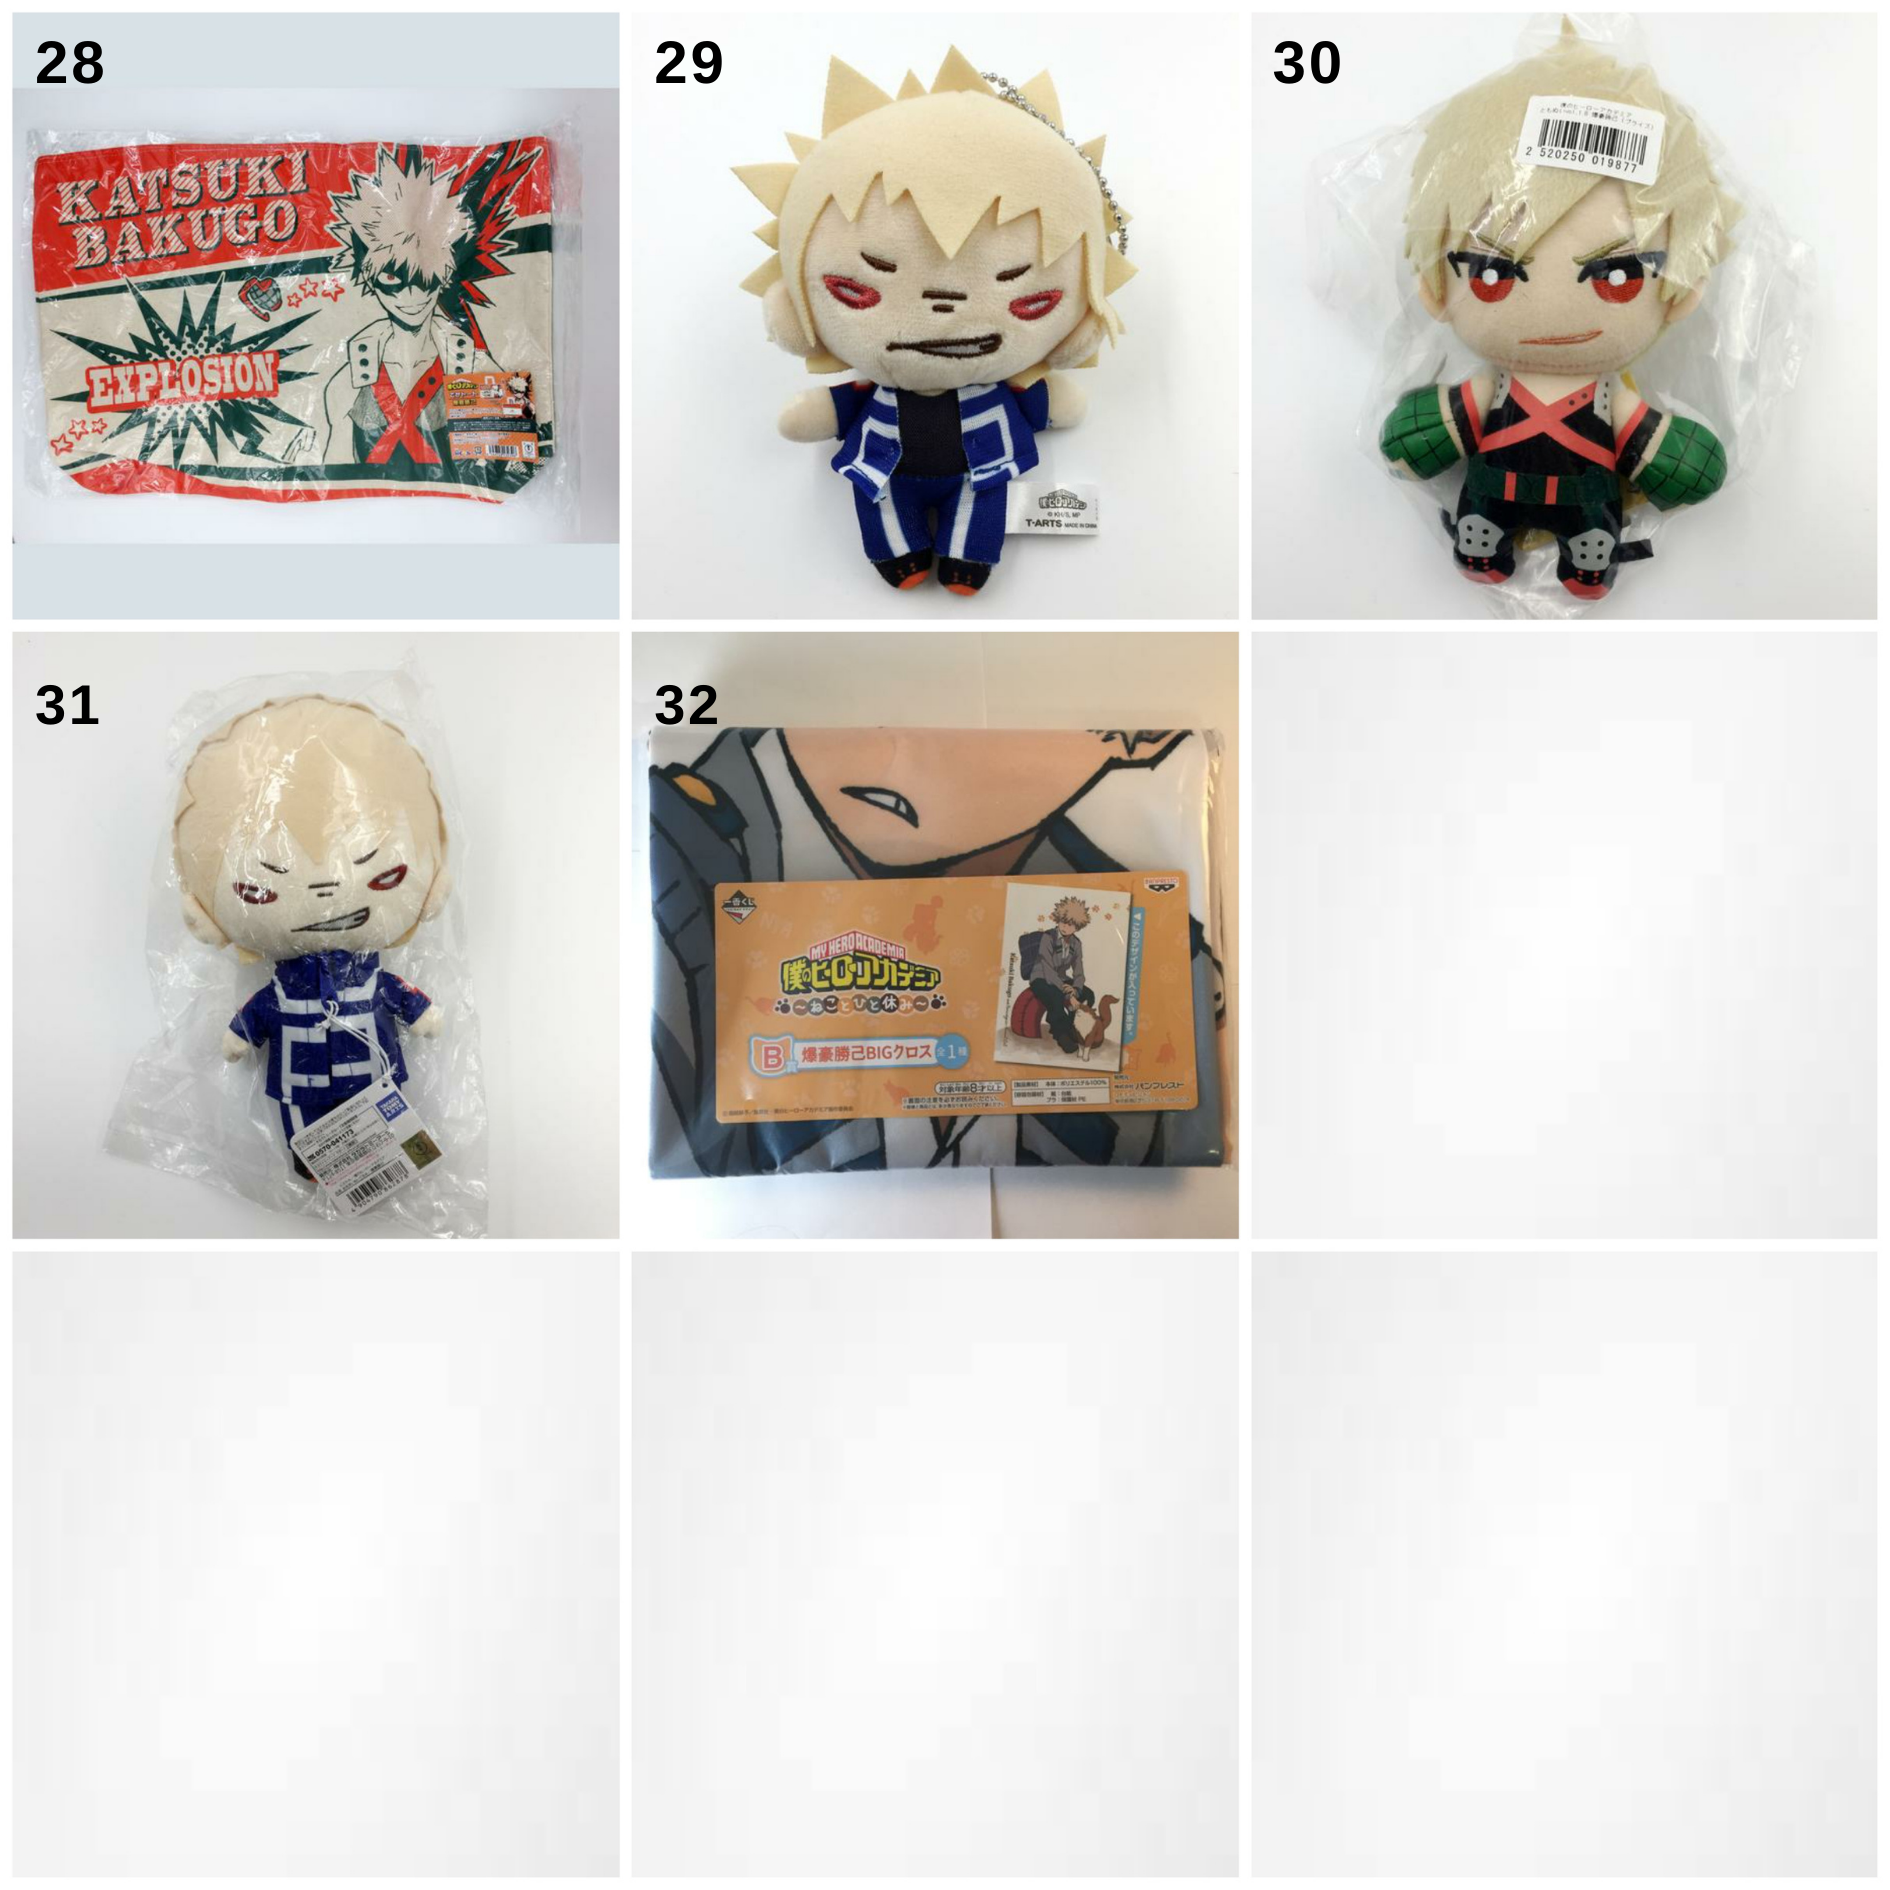 https://static.myfigurecollection.net/upload/pictures/2021/03/26/2670645.png